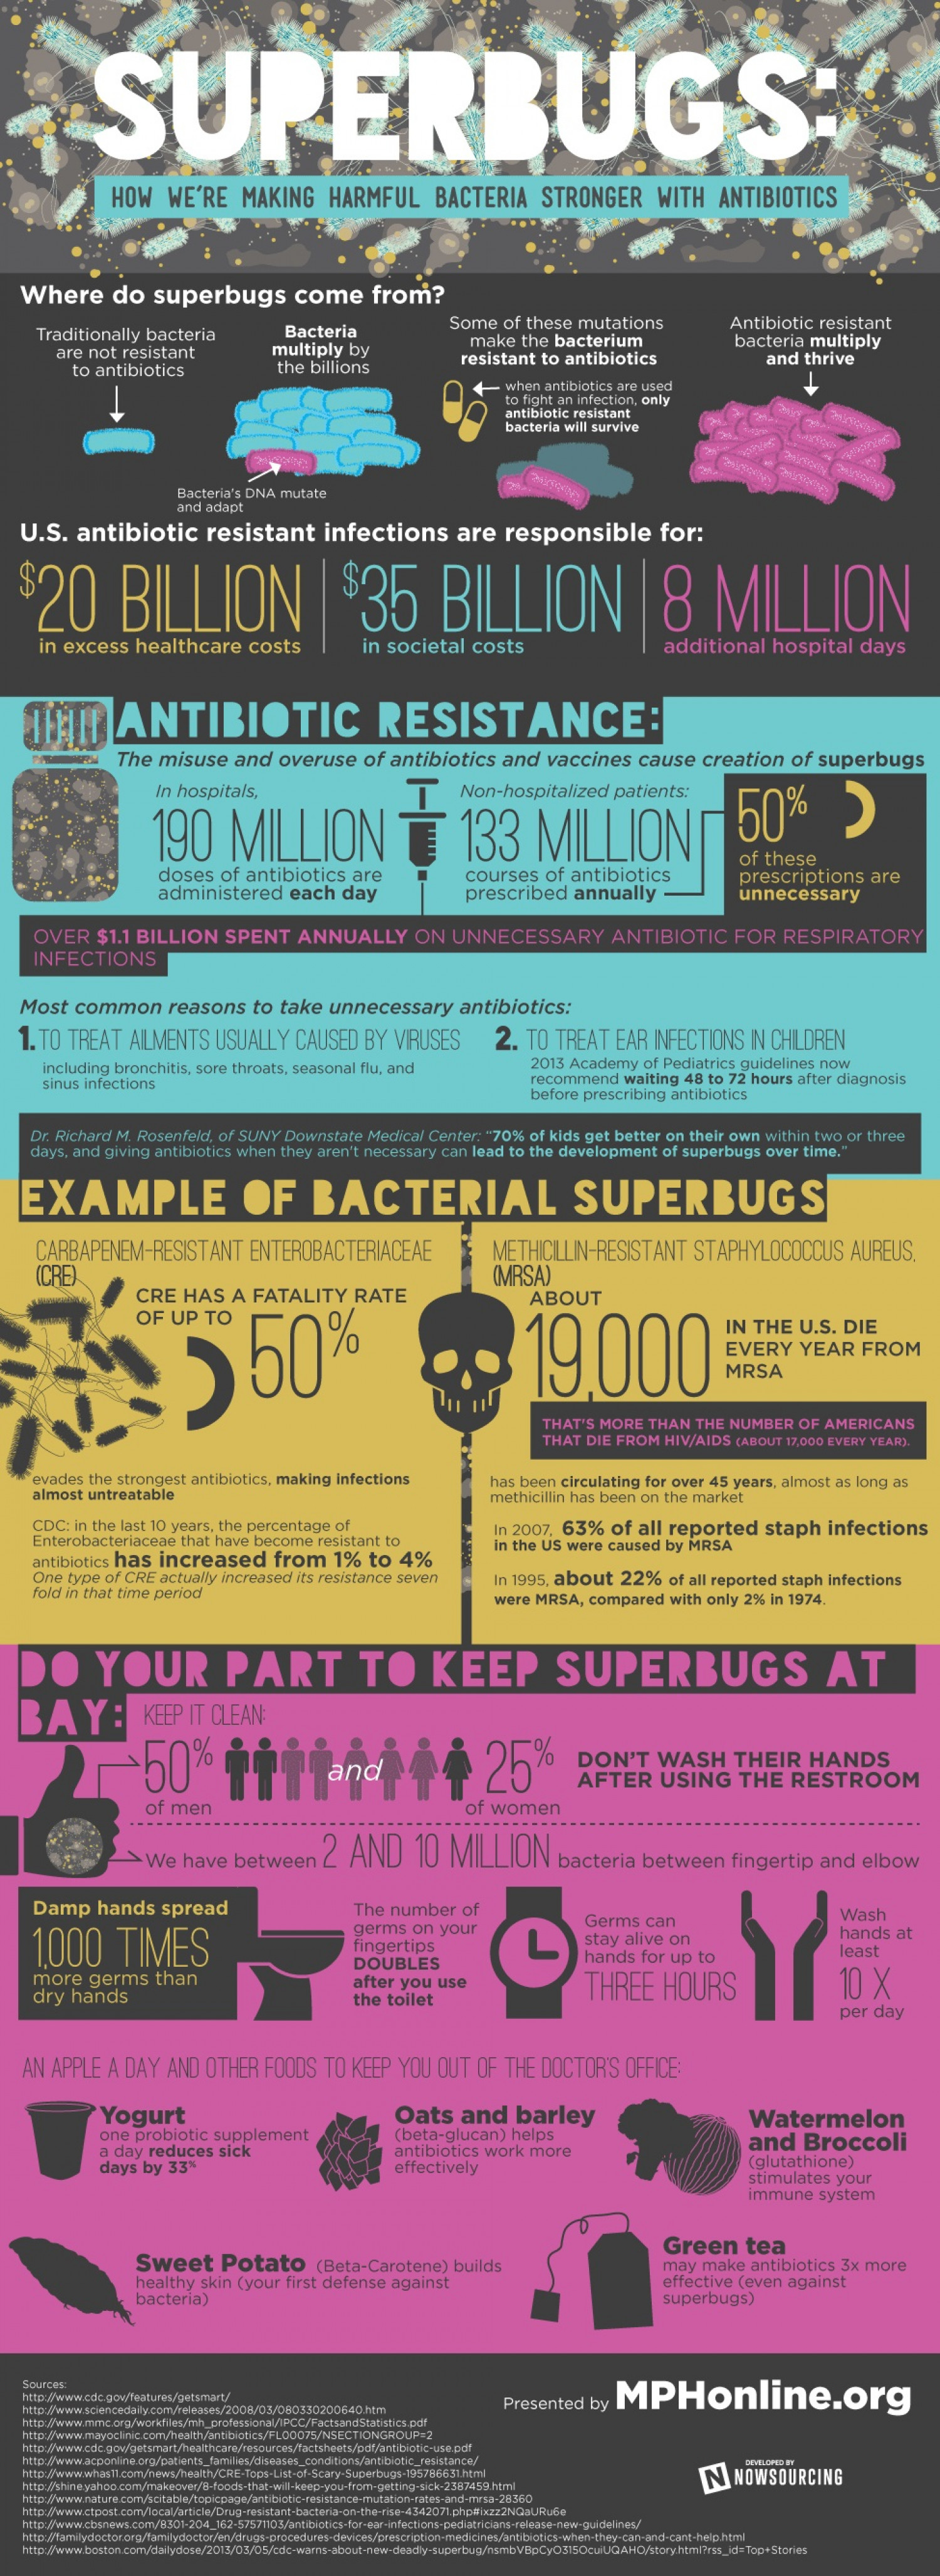 Superbugs Infographic